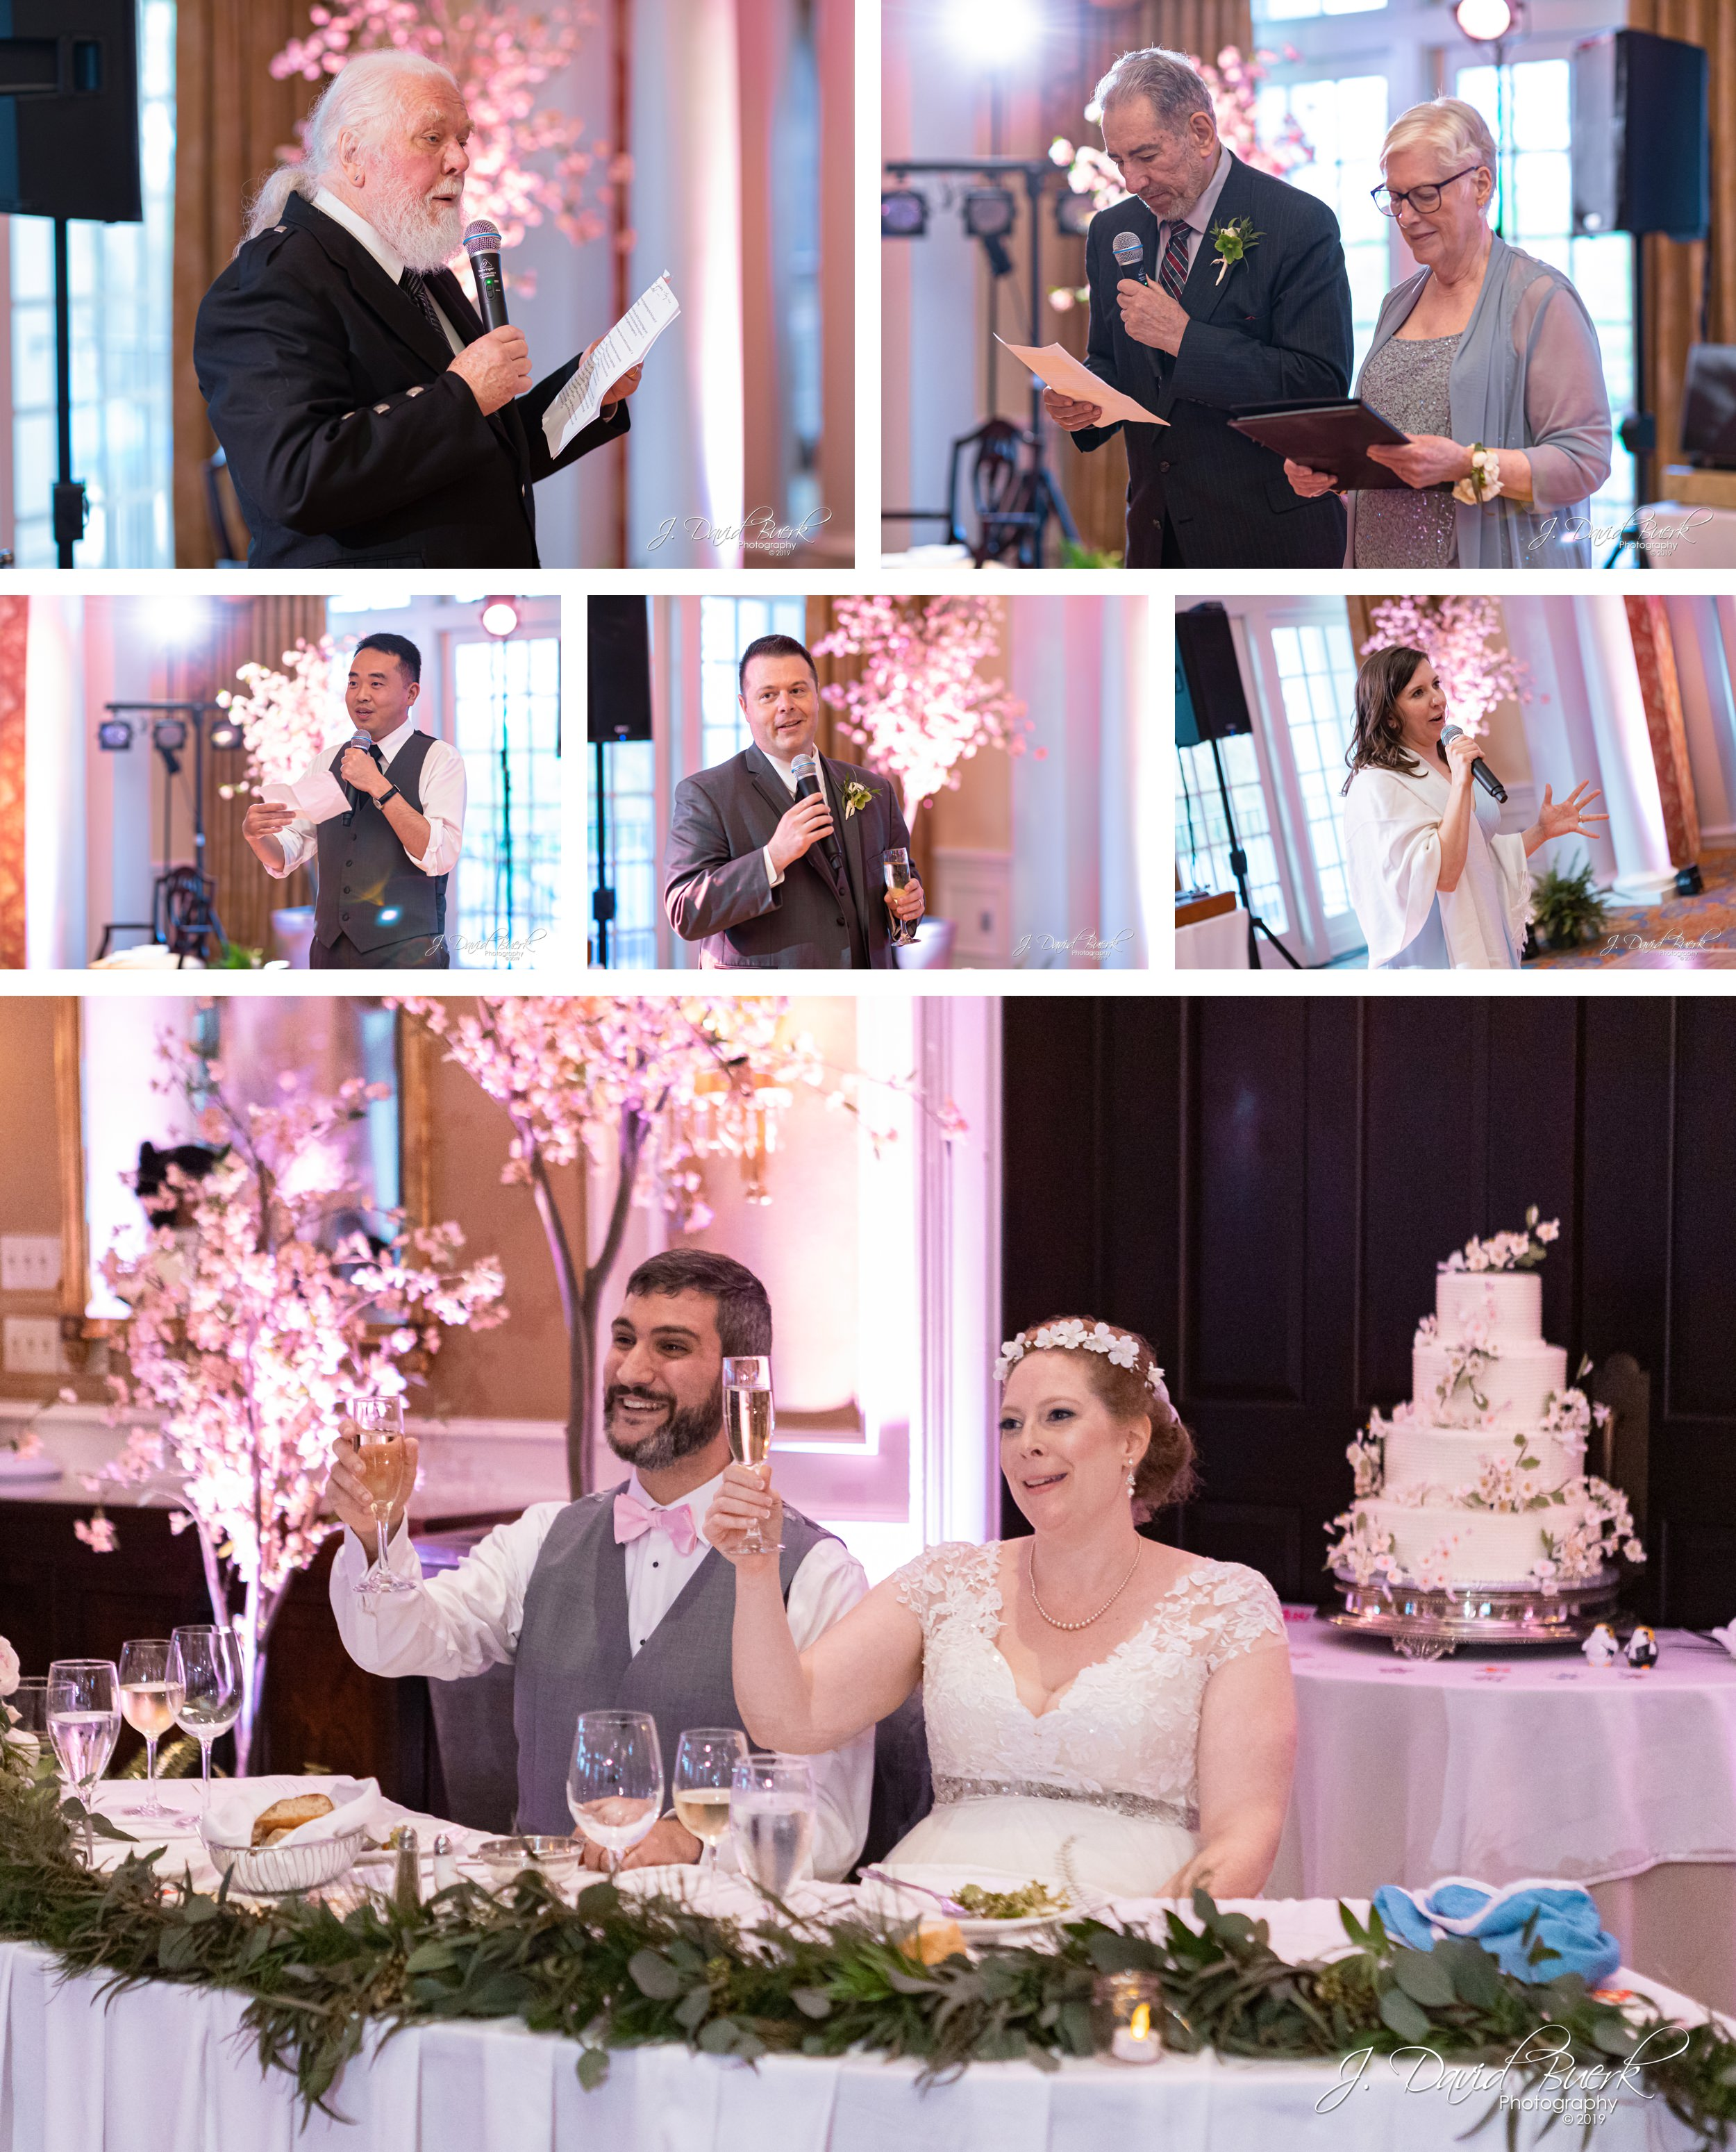 20190413 - Bayard and Margaret - Married 13.jpg